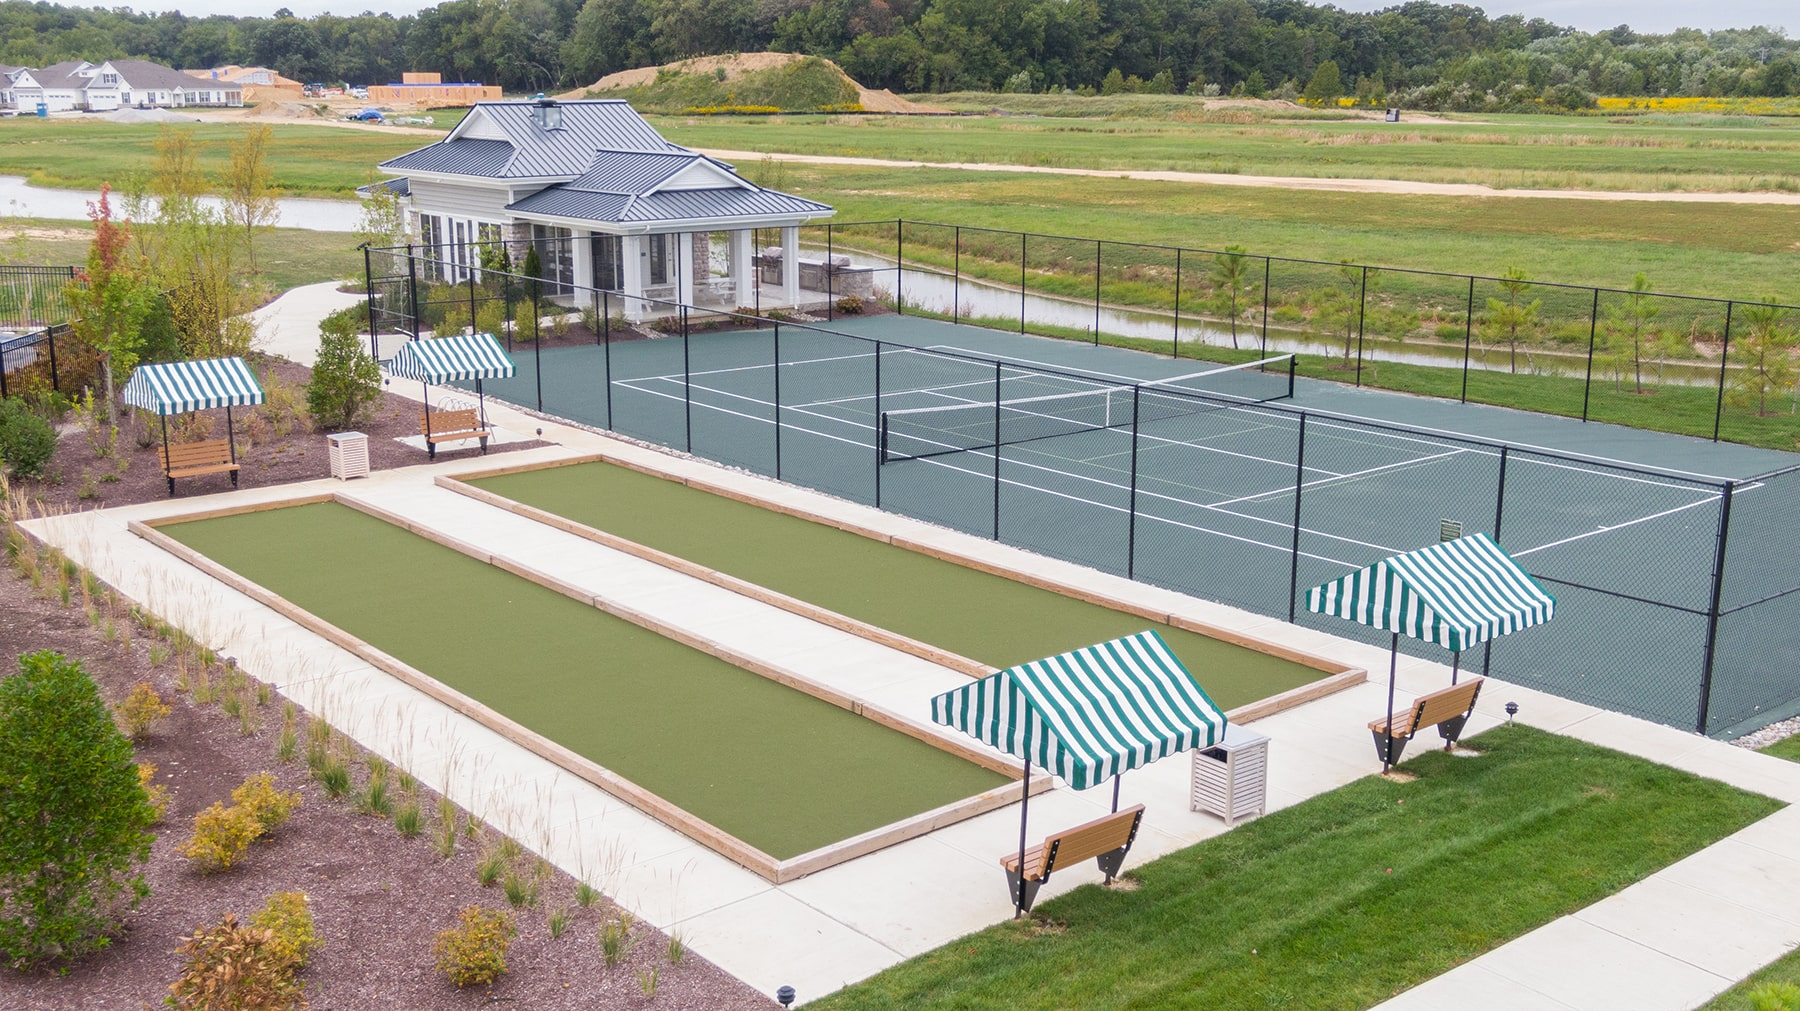 Image of the tennis courts outside the Bay Bride Cove Community Clubhouse